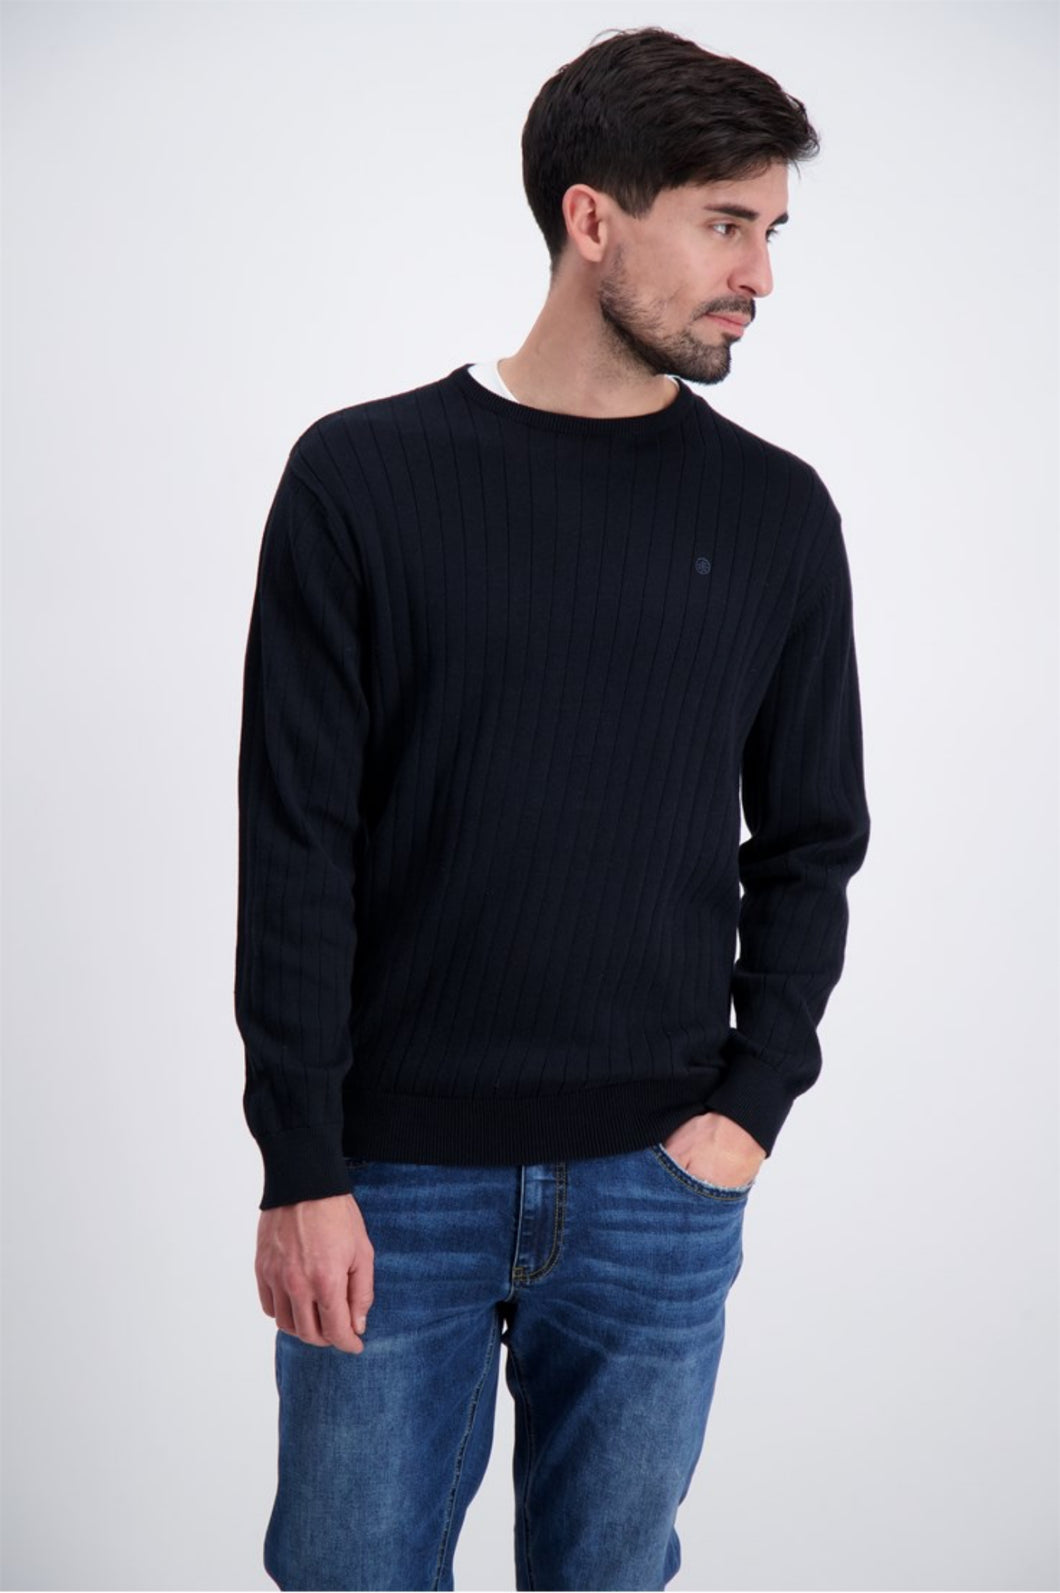 Drop Needle O-Neck Sweater - Navy / M - STICKAT 3-810002,